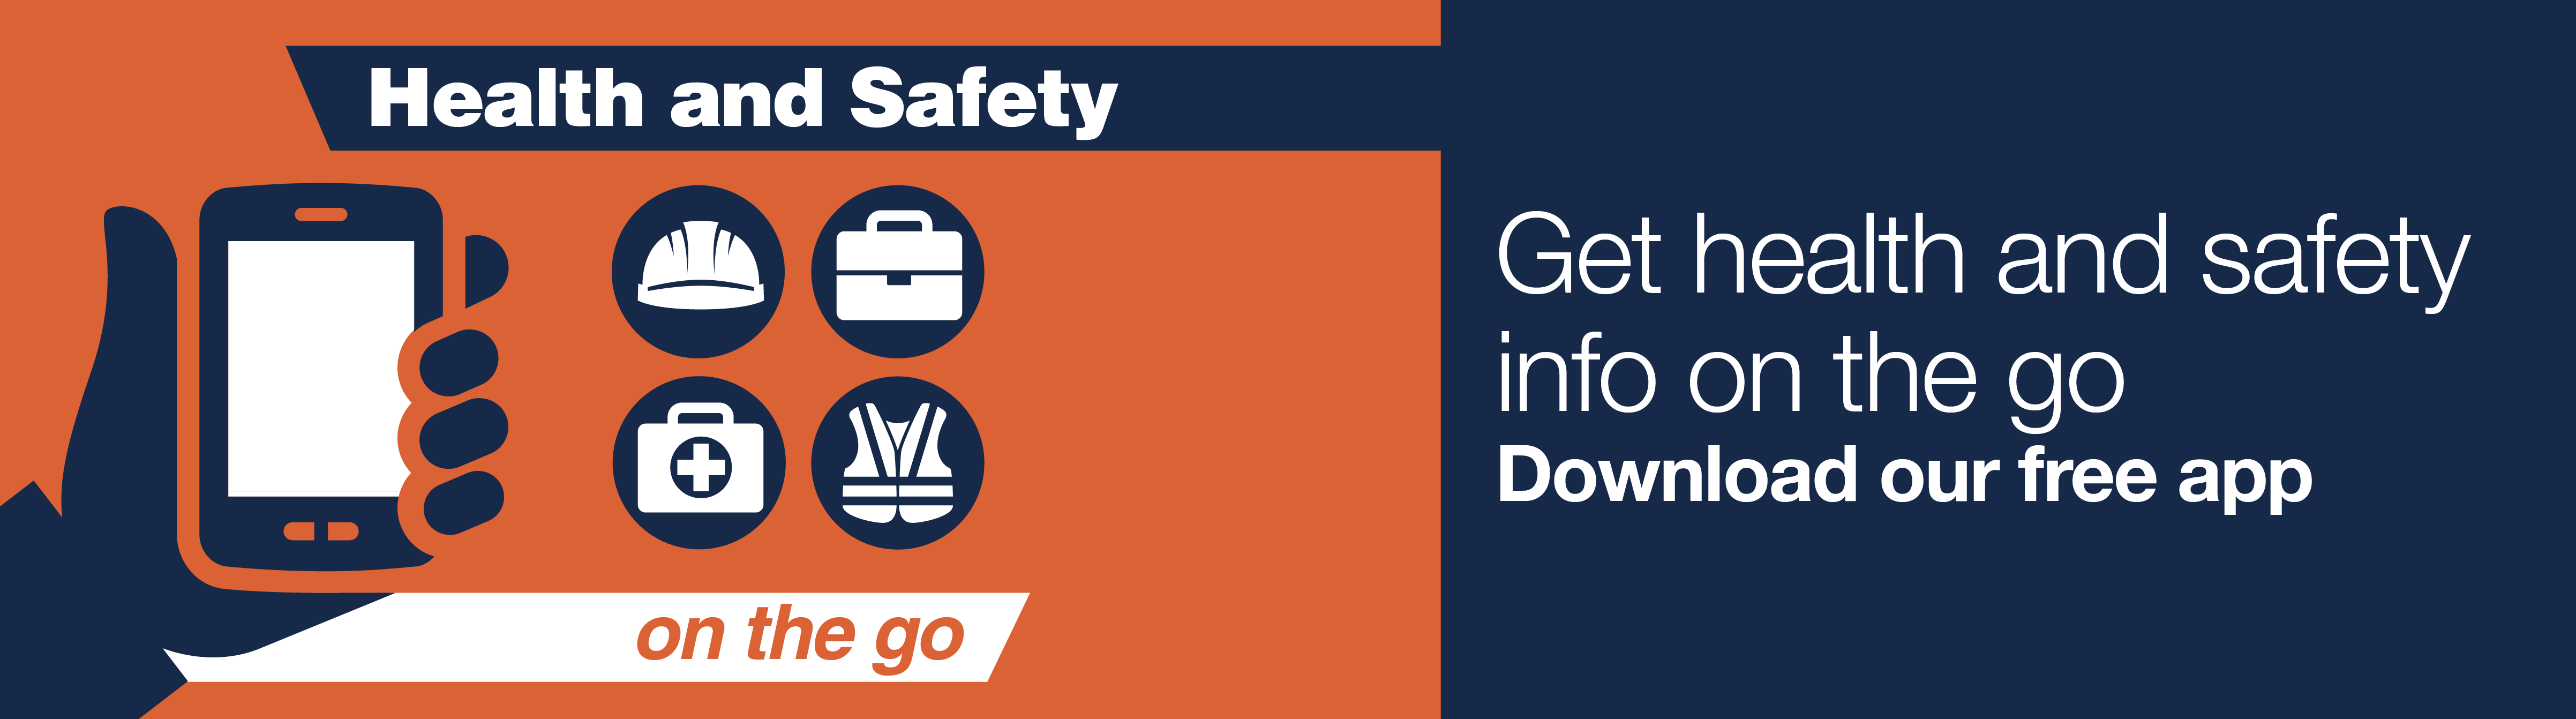 Get health and safety info on the go. Download our free app.